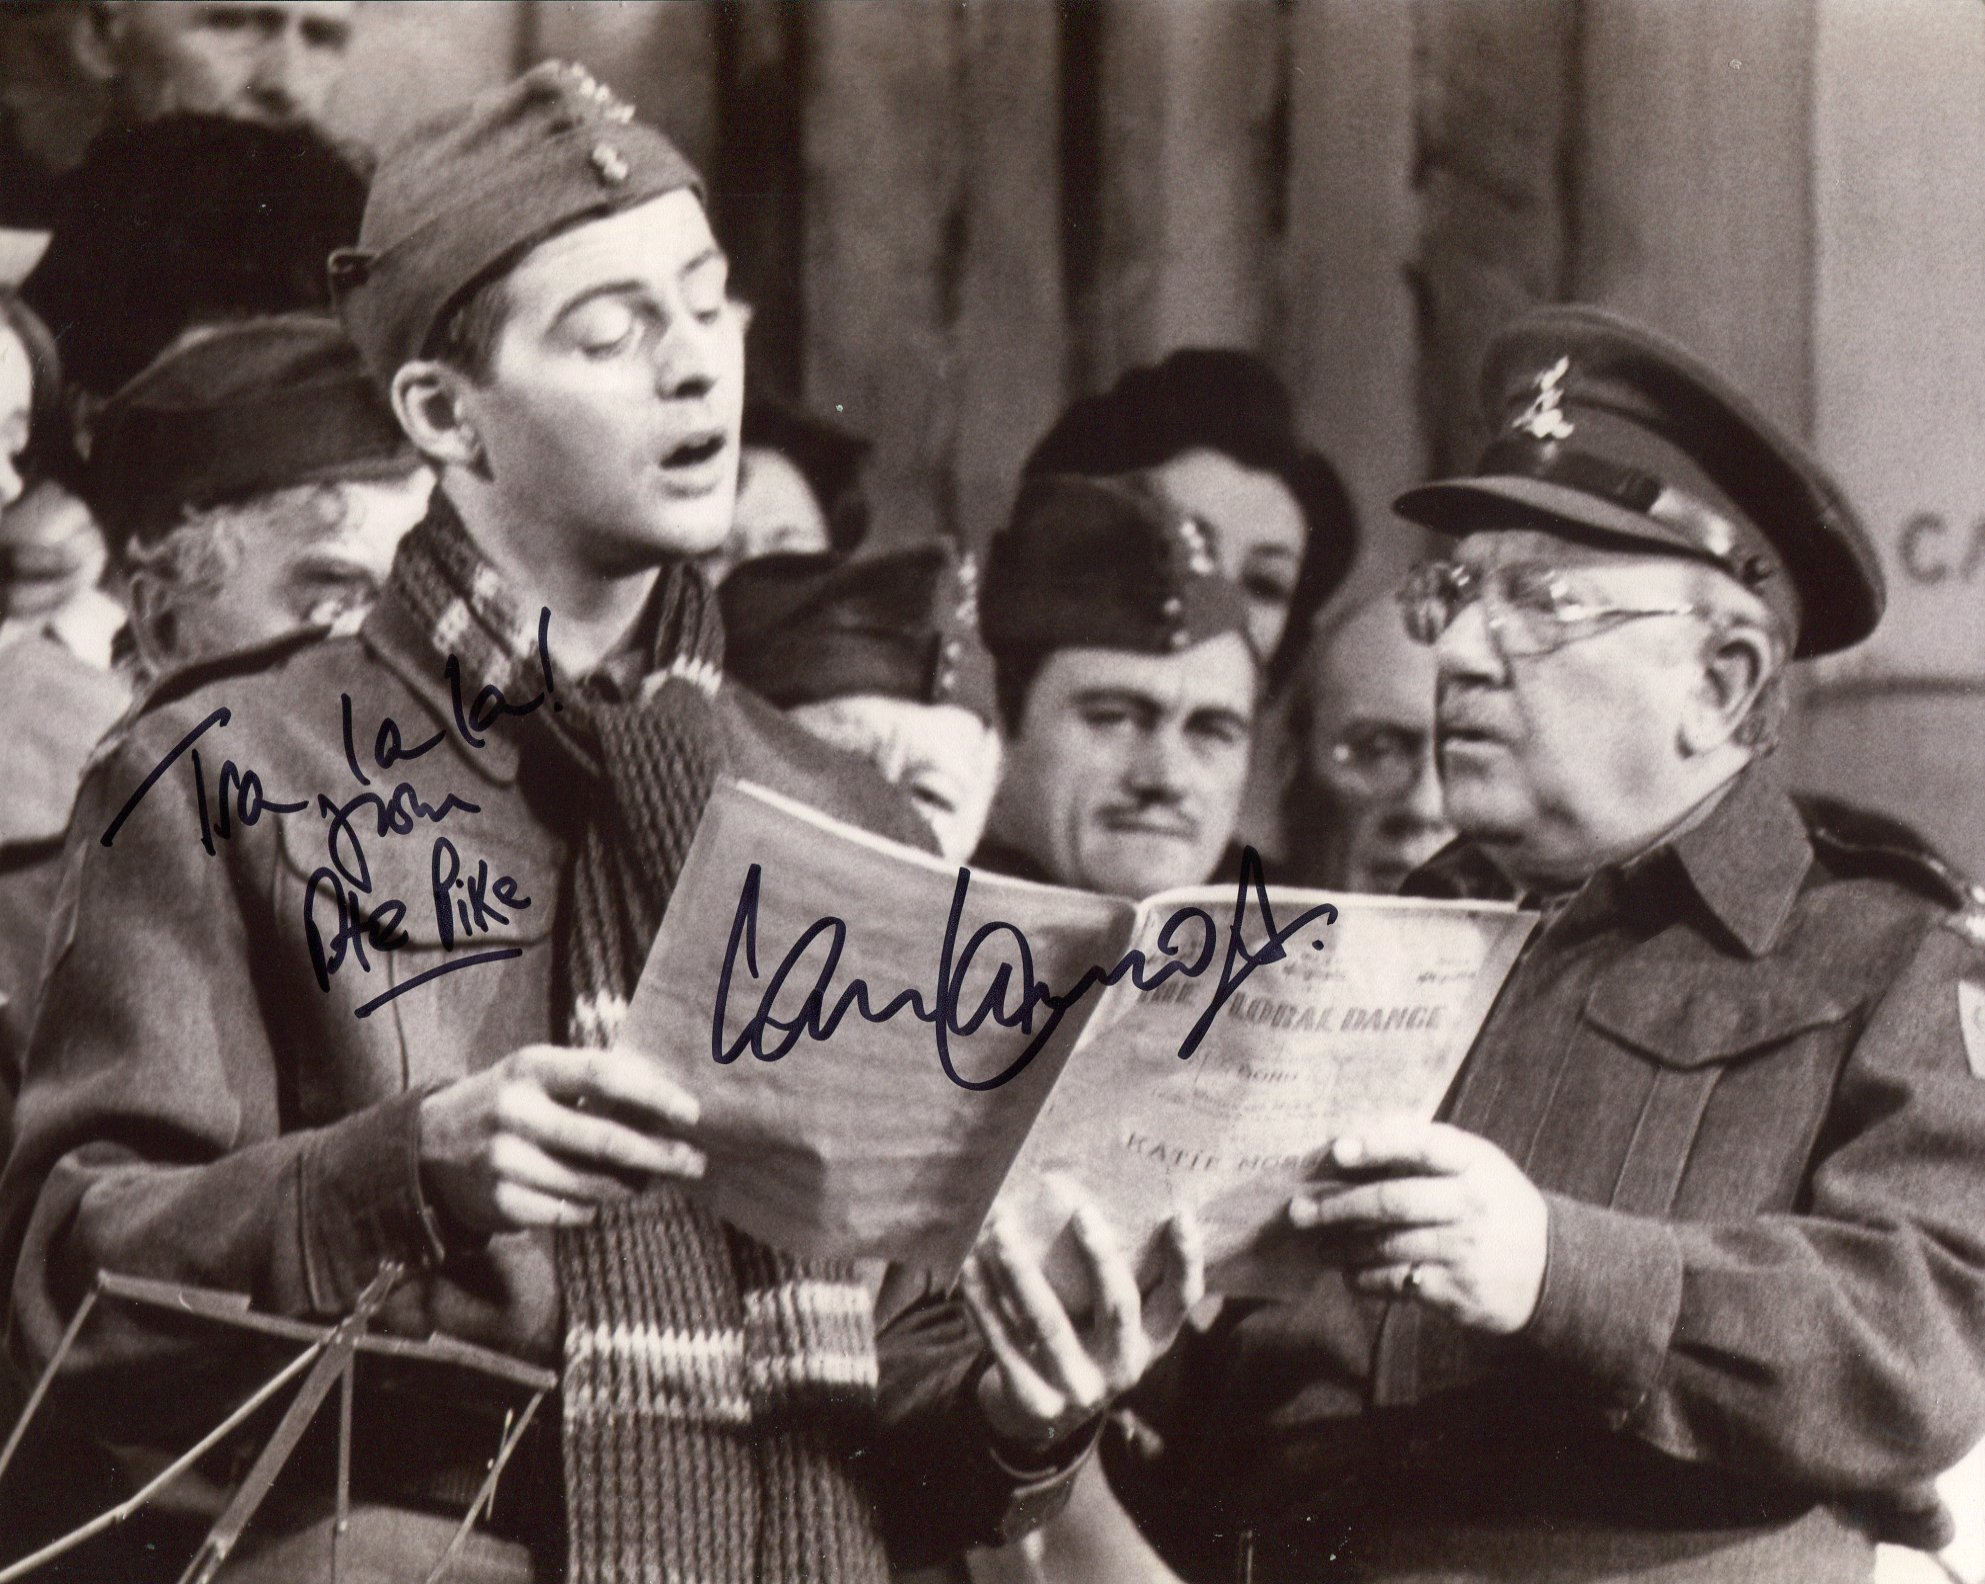 Dads Army 8x10 comedy photo signed by actor Ian Lavender who played Private Pike in the series. Good